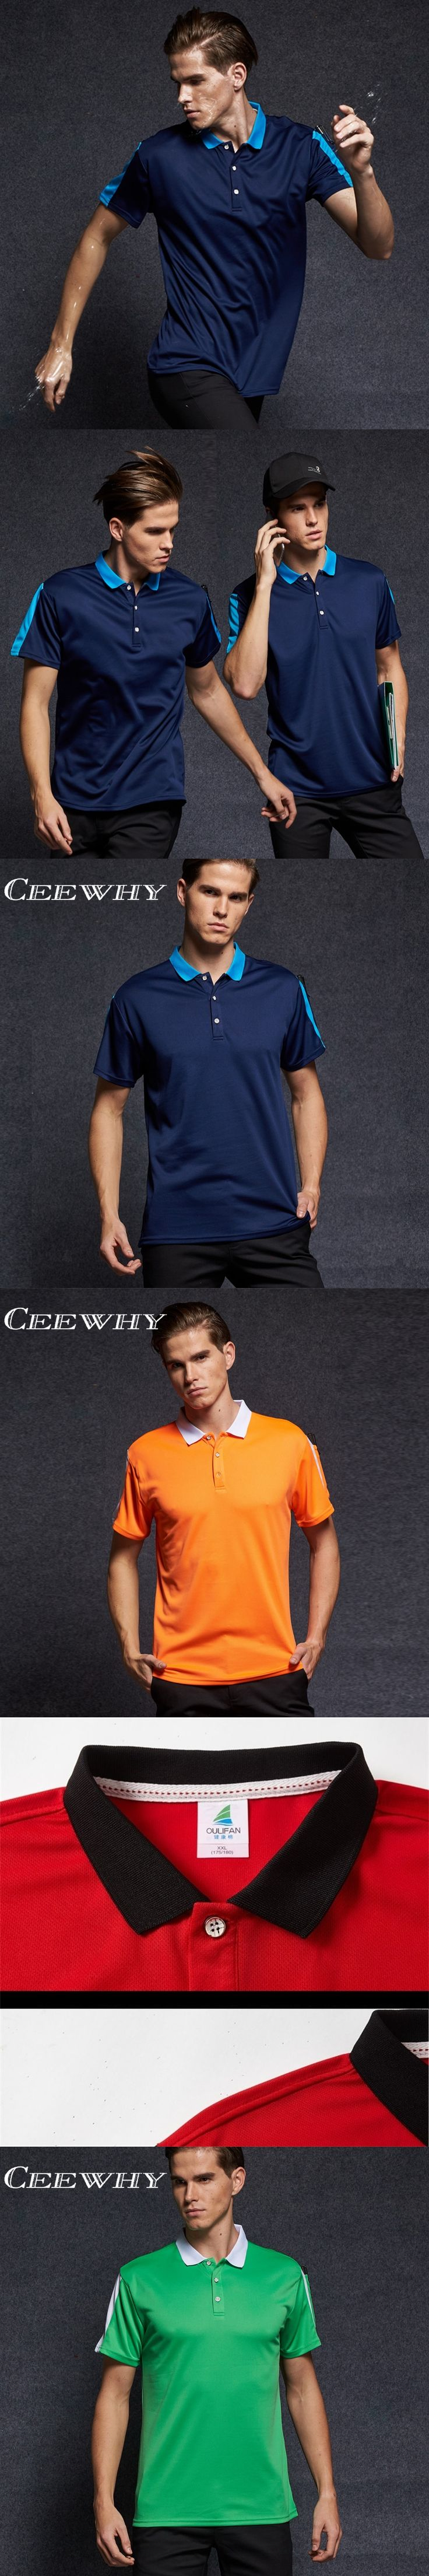 CEEWHY Summer Fashion Mens Brand Camisa Polo Shirt For Men Short Sleeve Shirt Polo Ralphmen Pol Shirt Polo with Pocket Plus Size